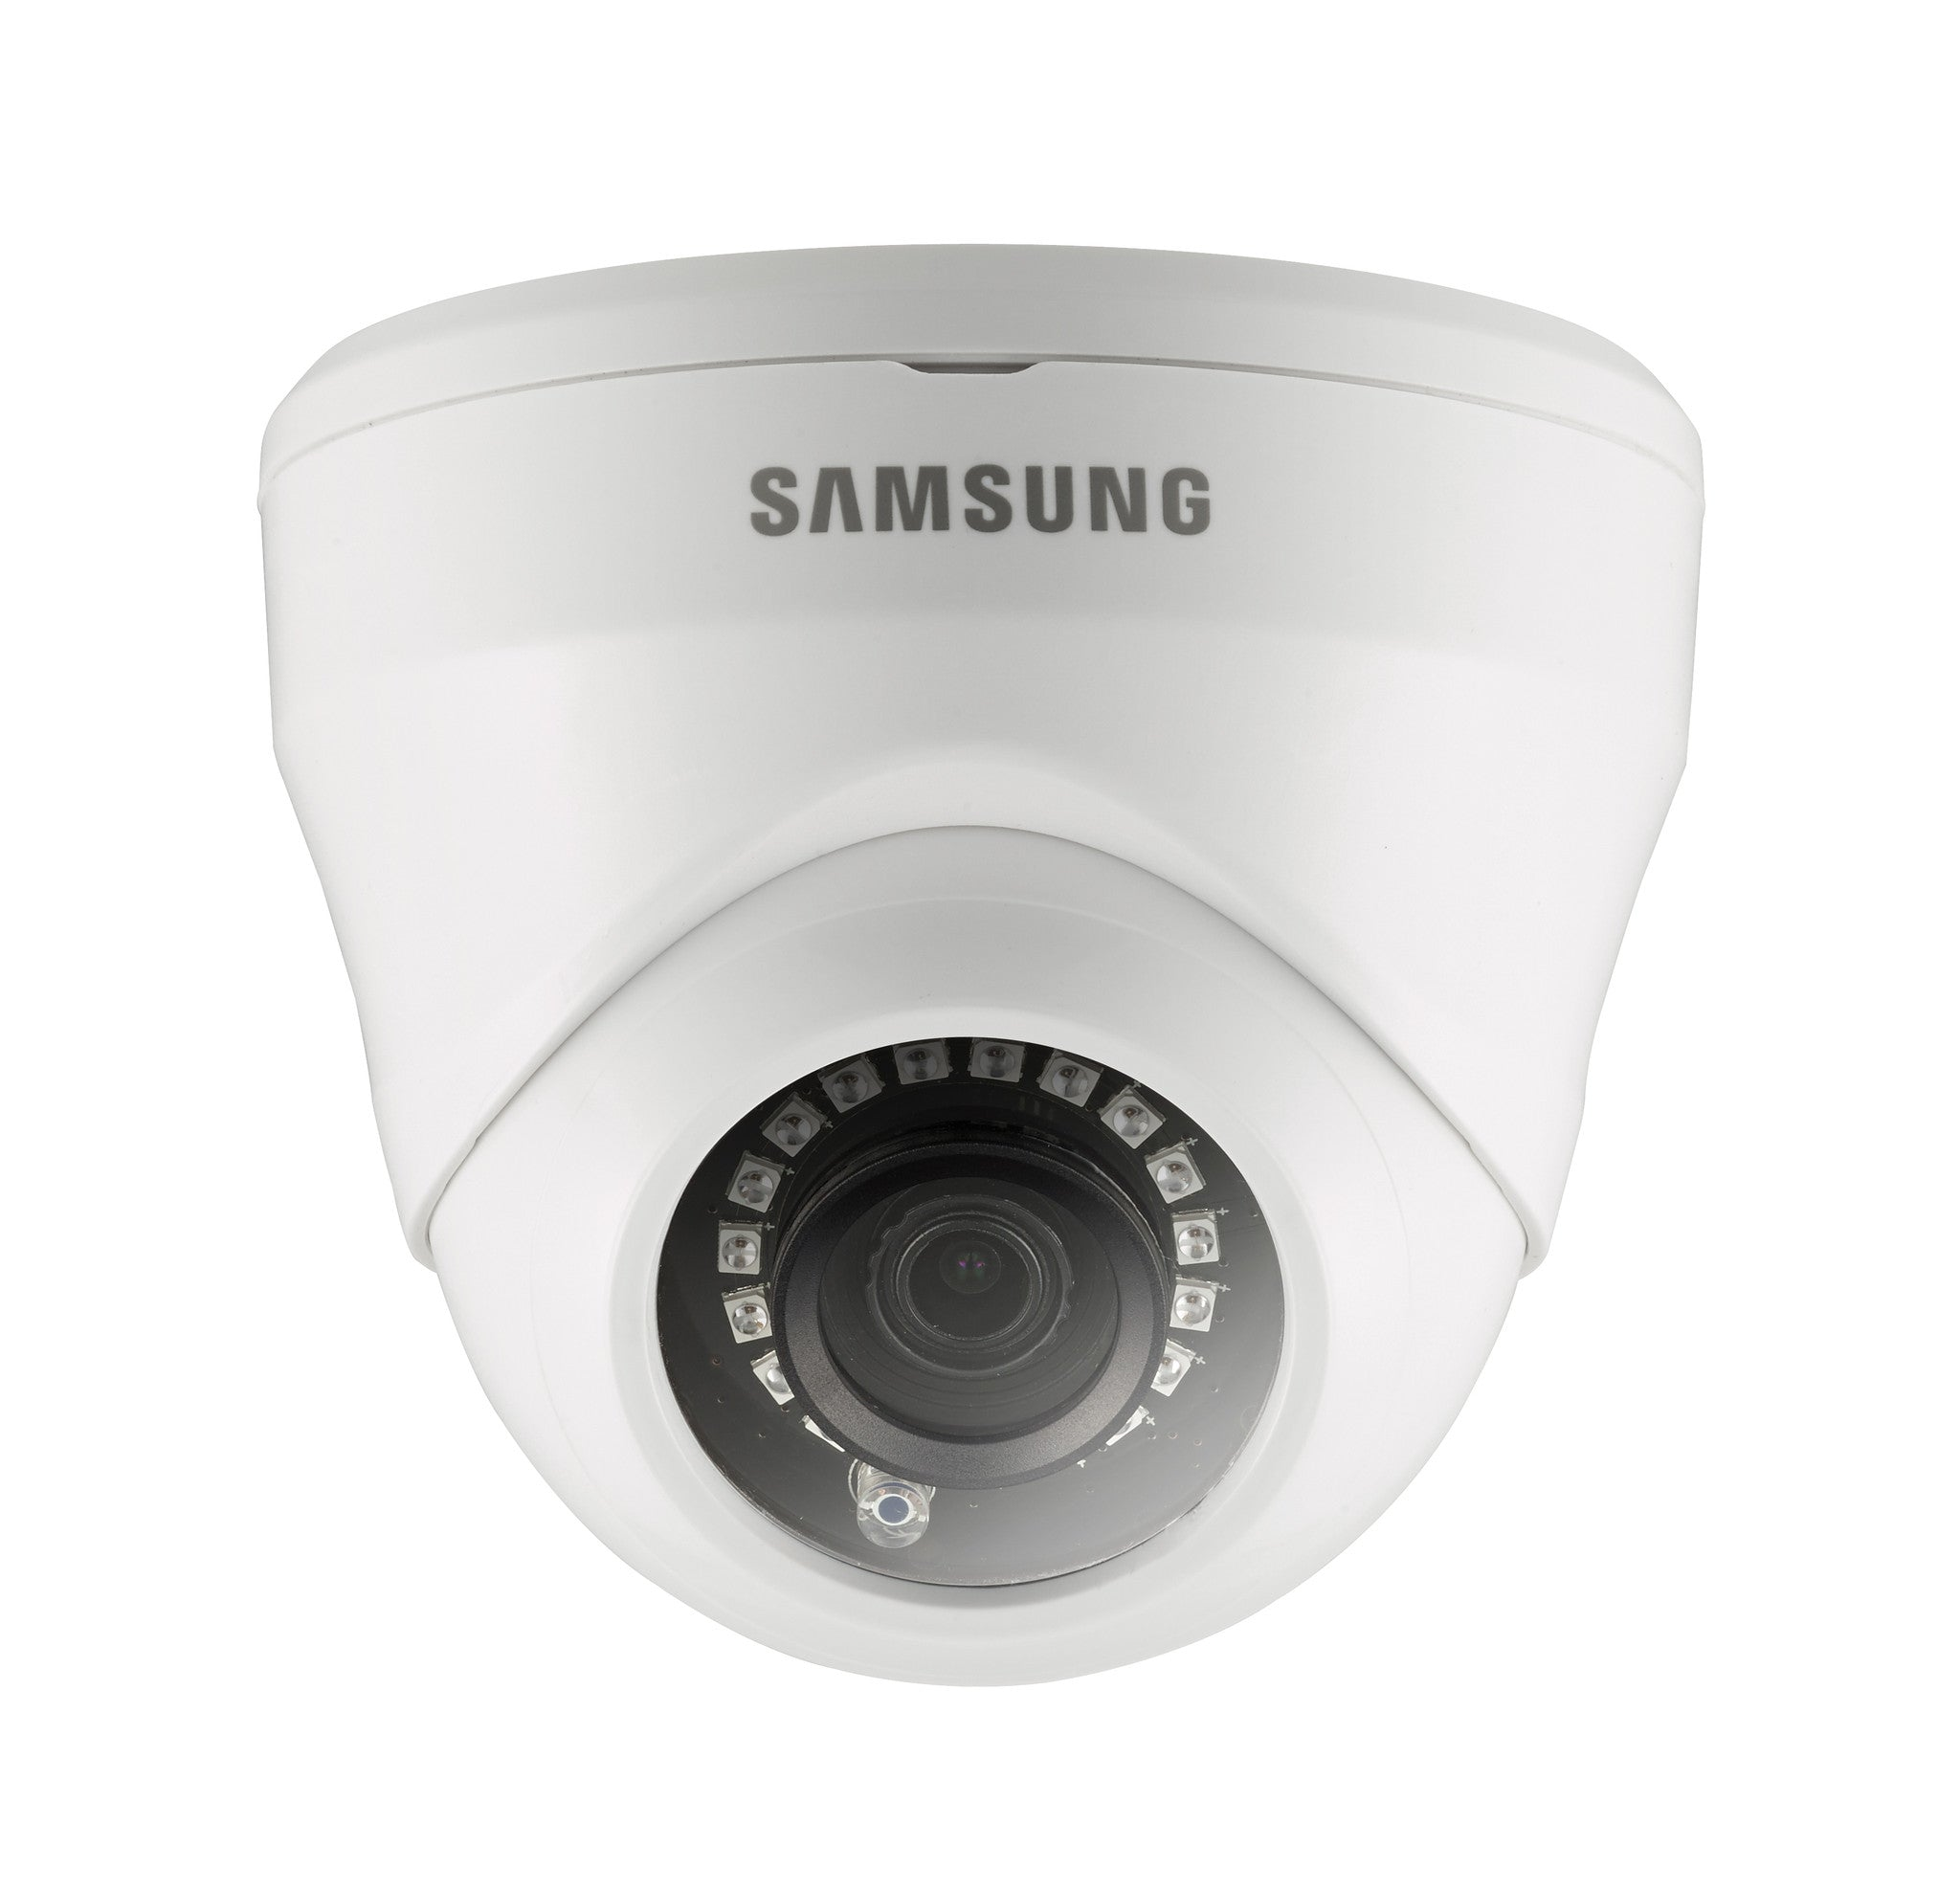 Sdc 9443df Samsung Wisenet Weather Resistant 1080p High